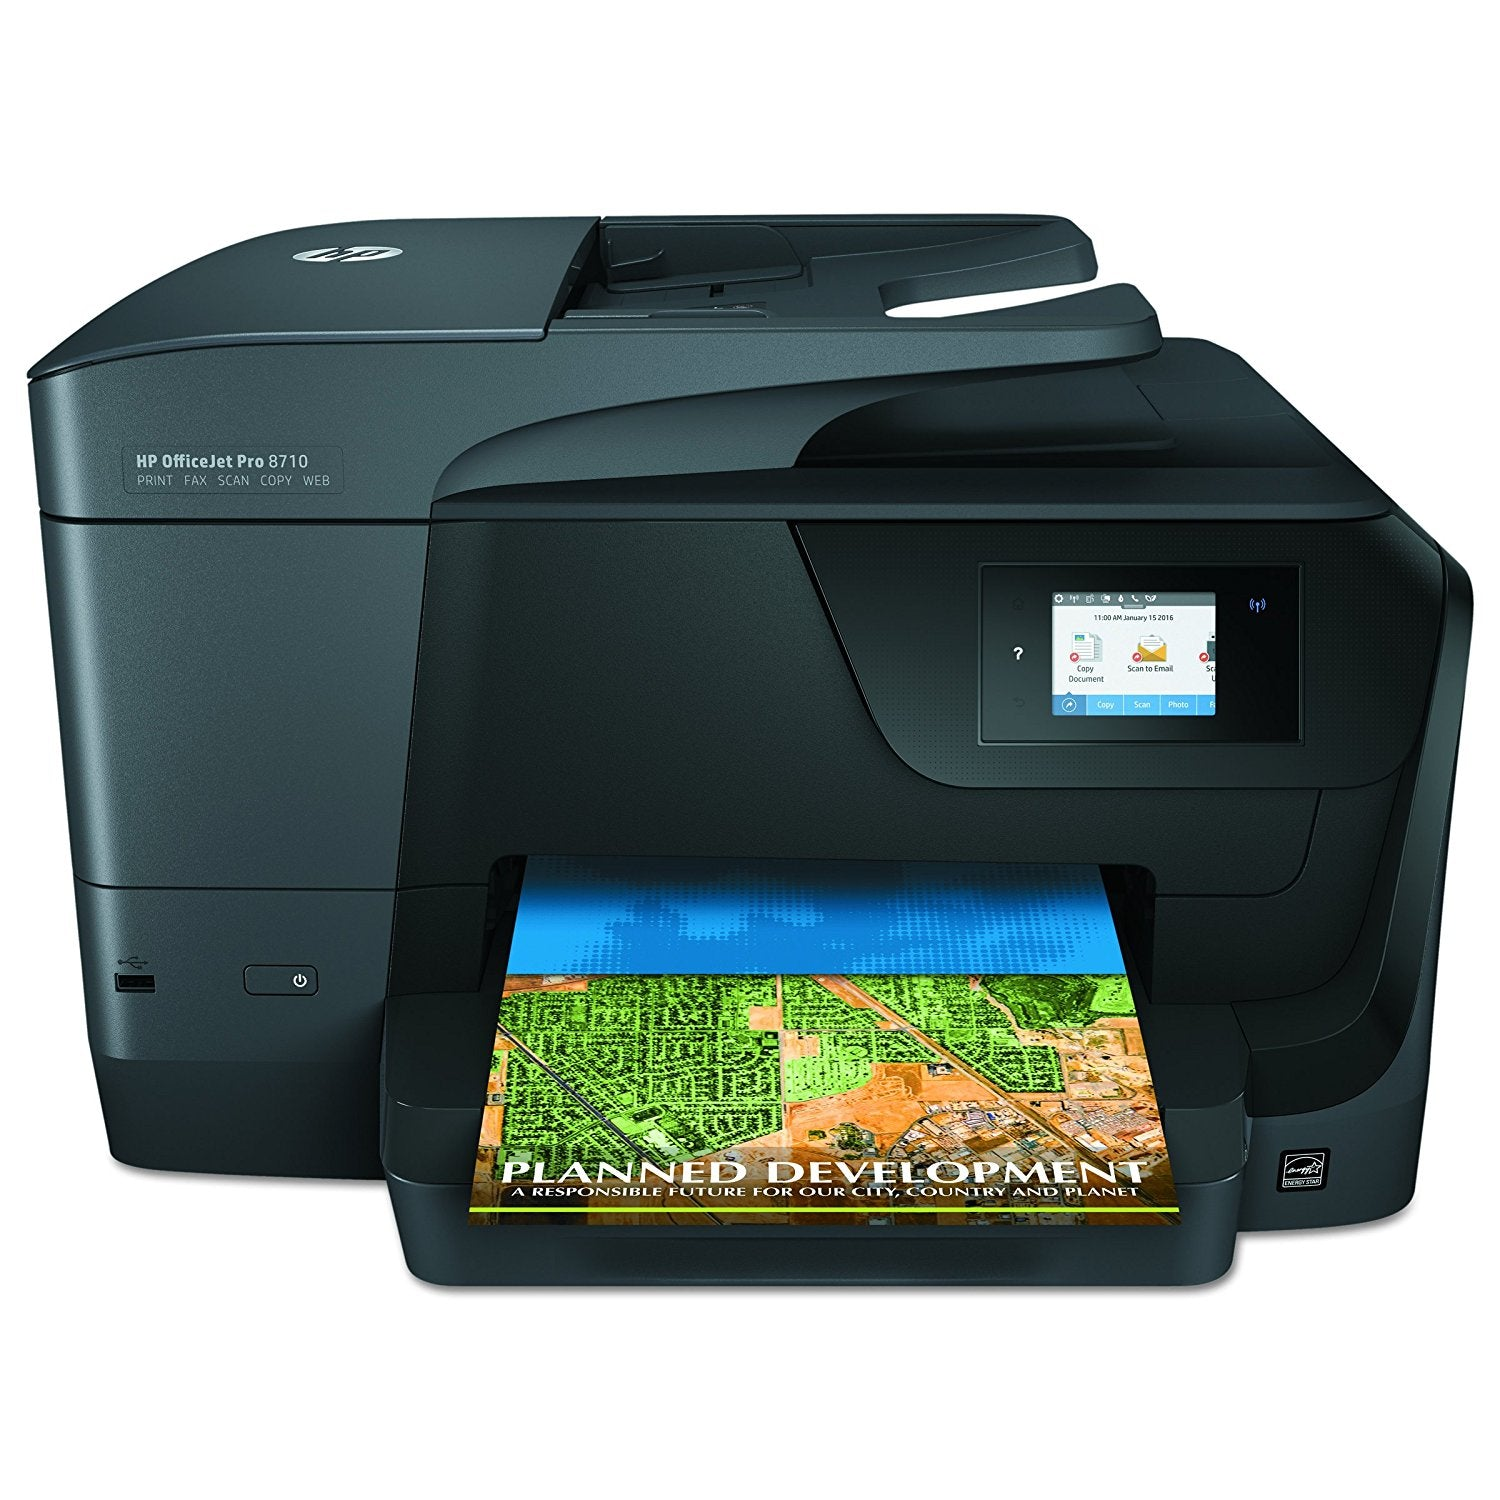 This full-featured wireless all-in-one delivers professional-quality color for up to 50% lower cost per page than lasers. Stay productive and tackle high-volume print jobs with print, fax, scan, and copy versatility. Finish jobs in a snap with an all-in-one printer designed for fast, high-volume performance for the office.  Quick two-sided prints and swift fax, scan, and copy speeds keep workgroups productive. Manage tasks easily with touchscreen digital shortcuts. Scan digital files directly to email, network folders, and the cloud with preloaded business apps. Easily print documents, photos, and more from a variety of smartphones and tablets. Help protect information and access to confidential print jobs with HP JetAdvantage Private Print.Includes 1 year extended warranty.  Customer open box item, but never used.   All original packaging and ink are included.